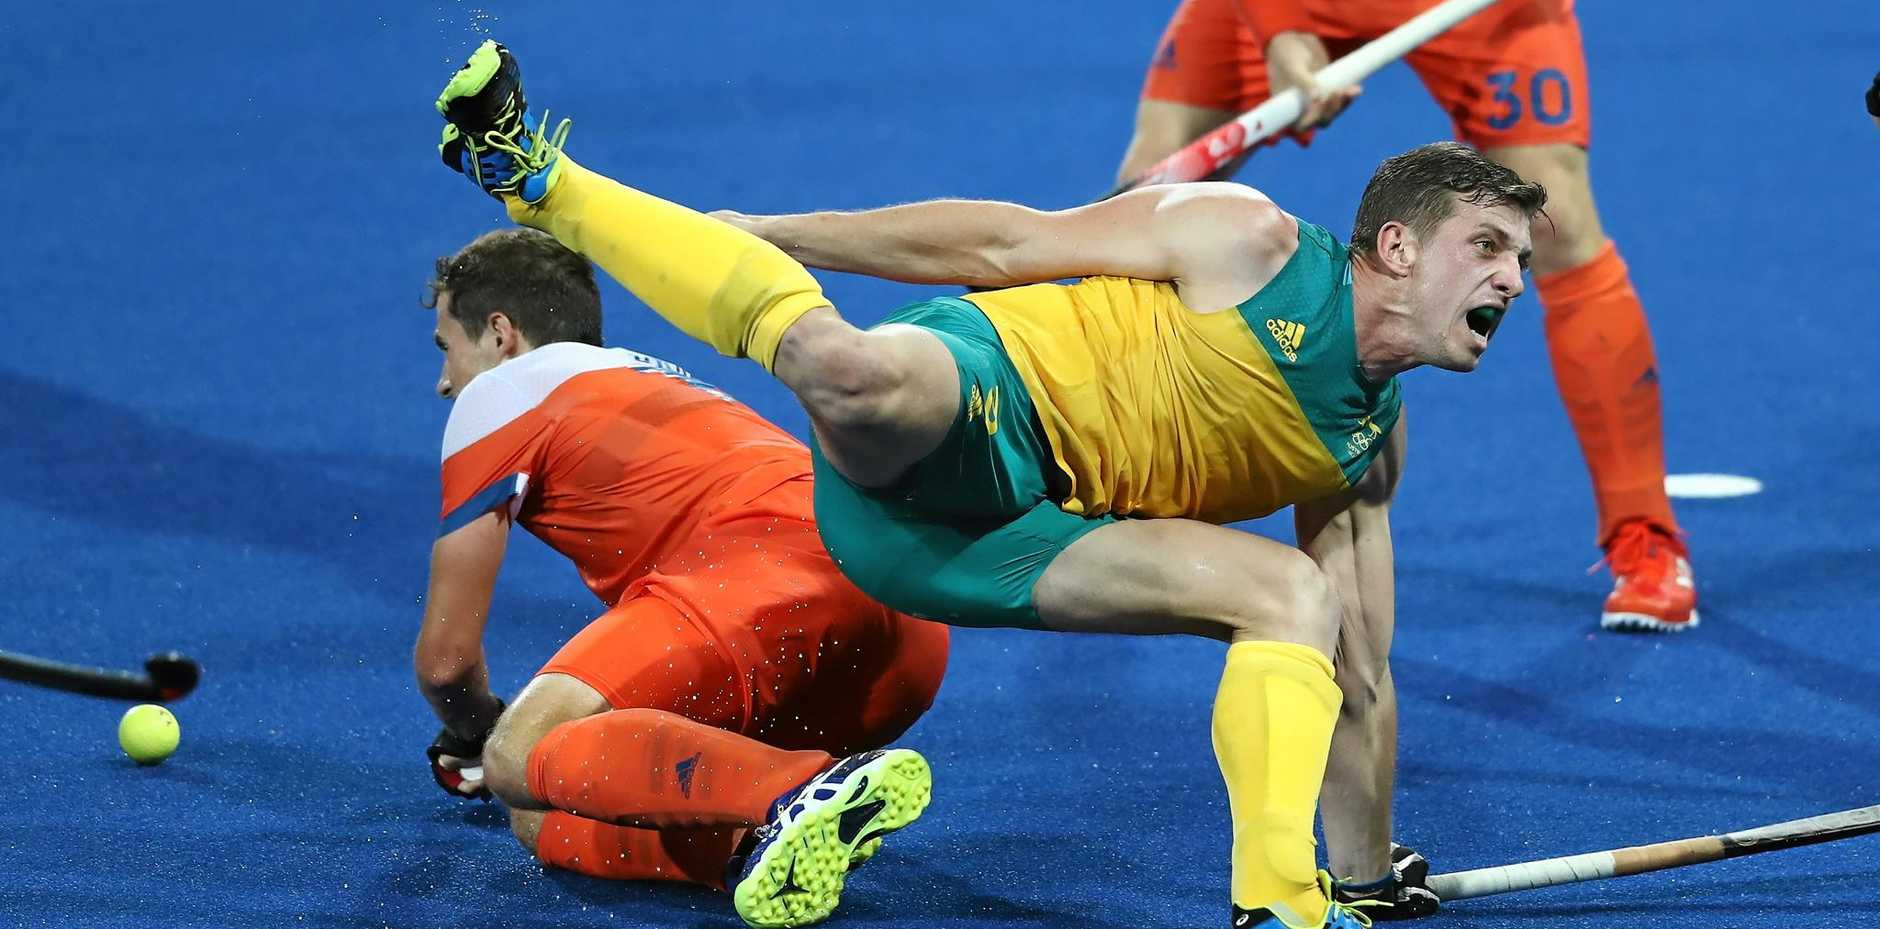 Simon Orchard of Australia is brought down in the Kookaburras' defeat to the Dutch.